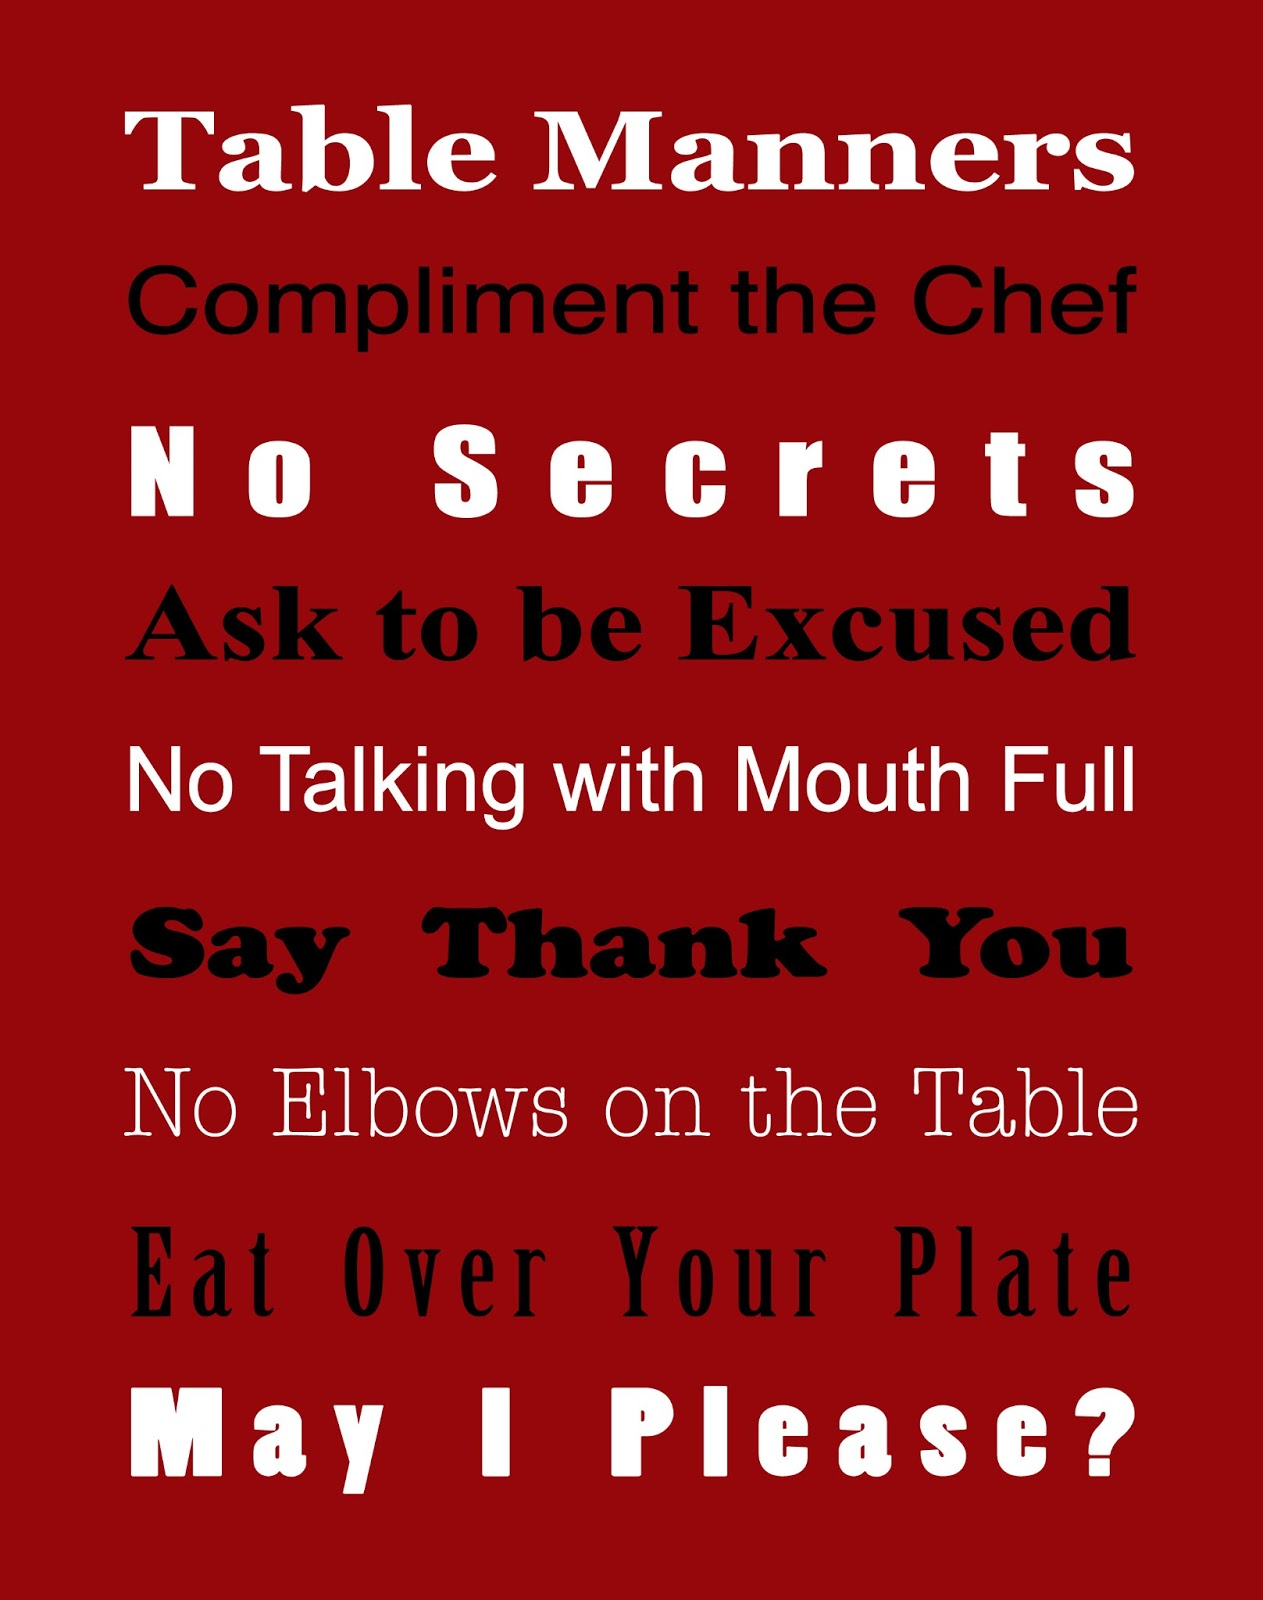 Basic Table Manners Free Printable True Aim : table manners from trueaimeducation.com size 1263 x 1600 jpeg 173kB